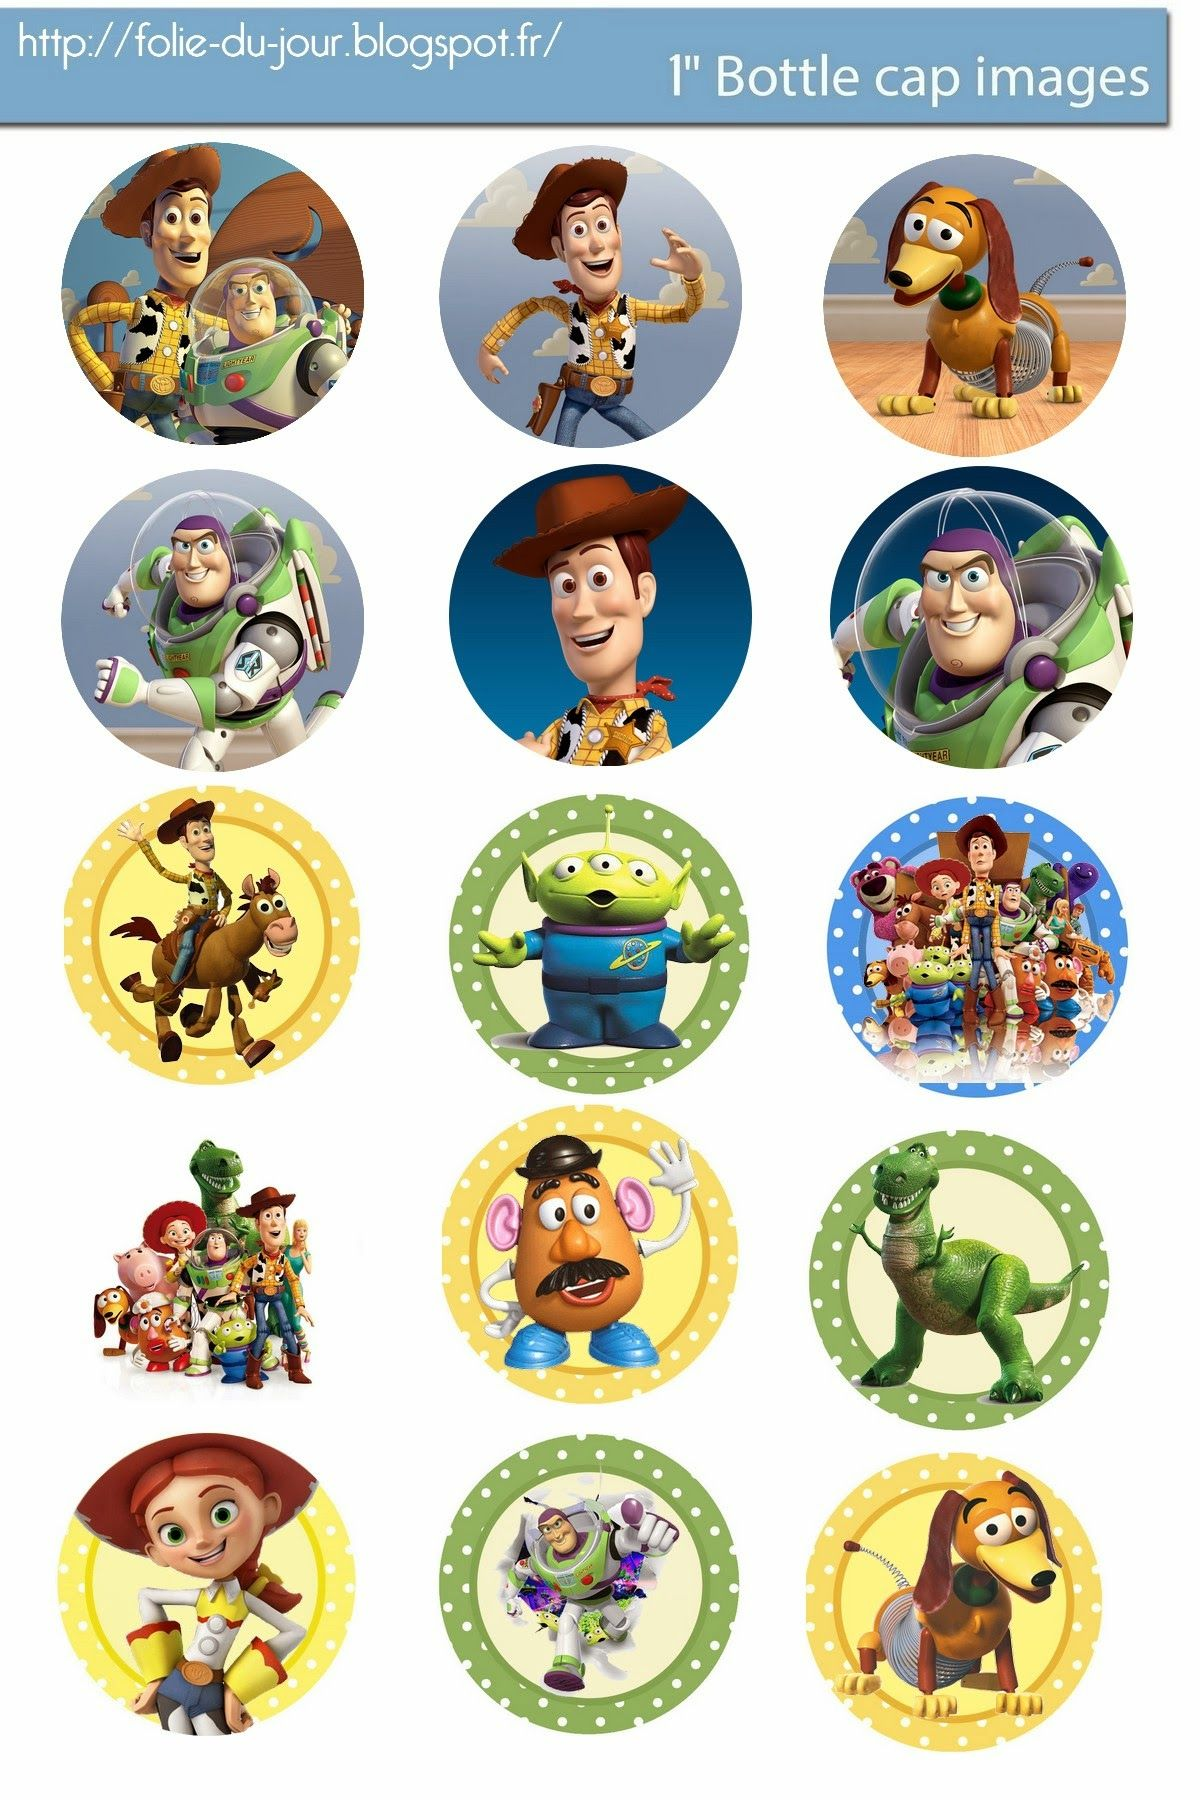 Free Bottle Cap Images Free Toy Story Digital Bottle Cap